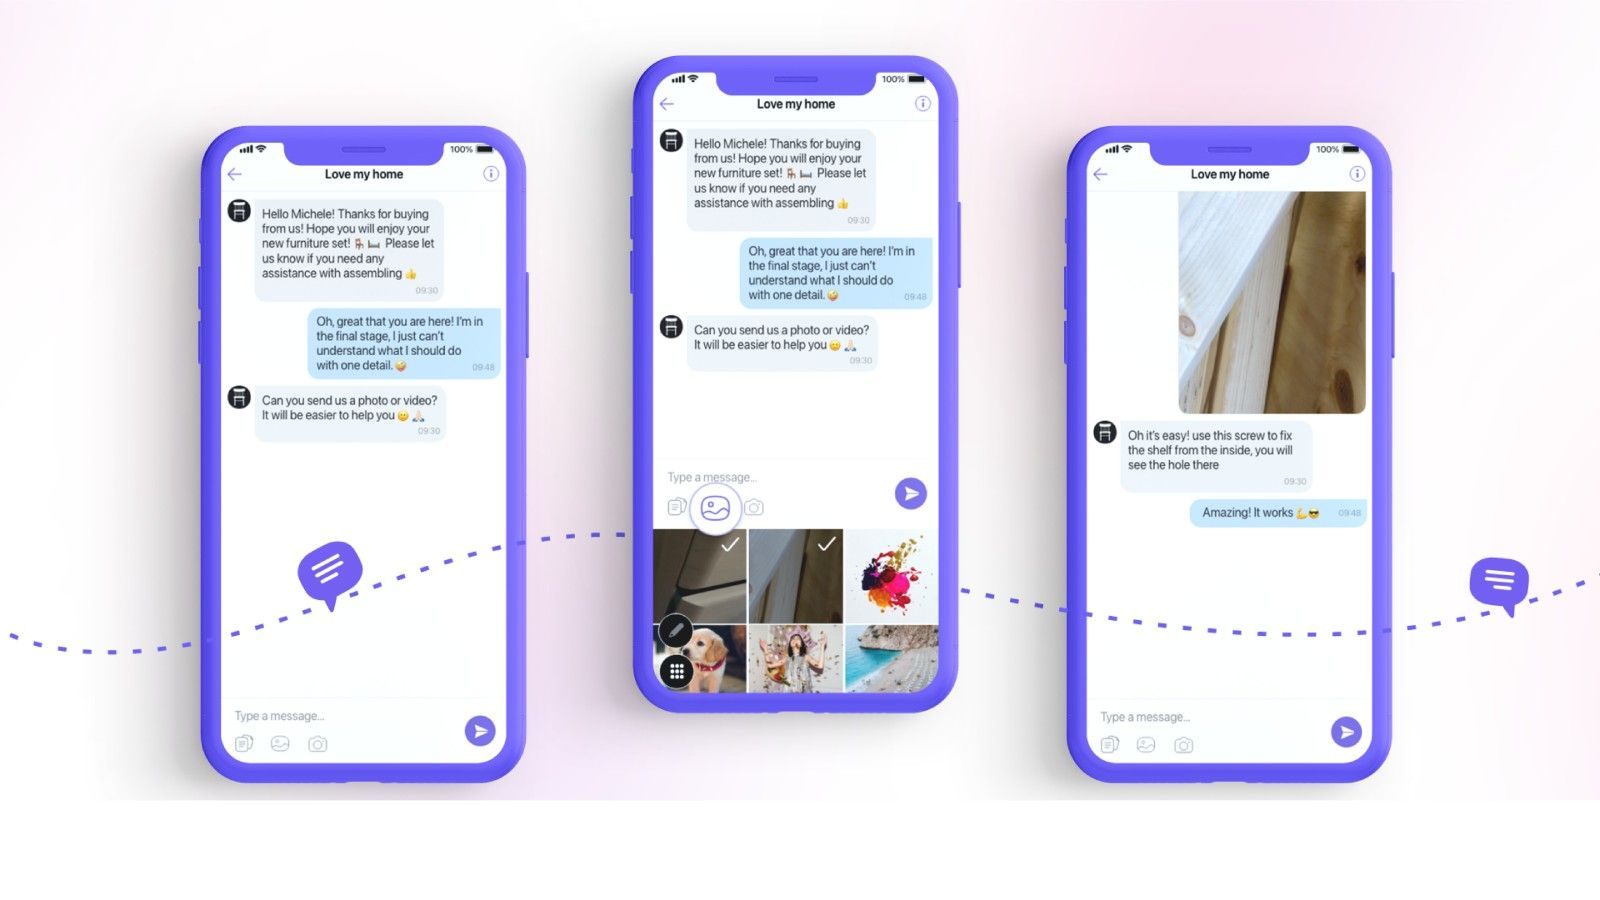 Viber Business Messages feature updates: May 2021